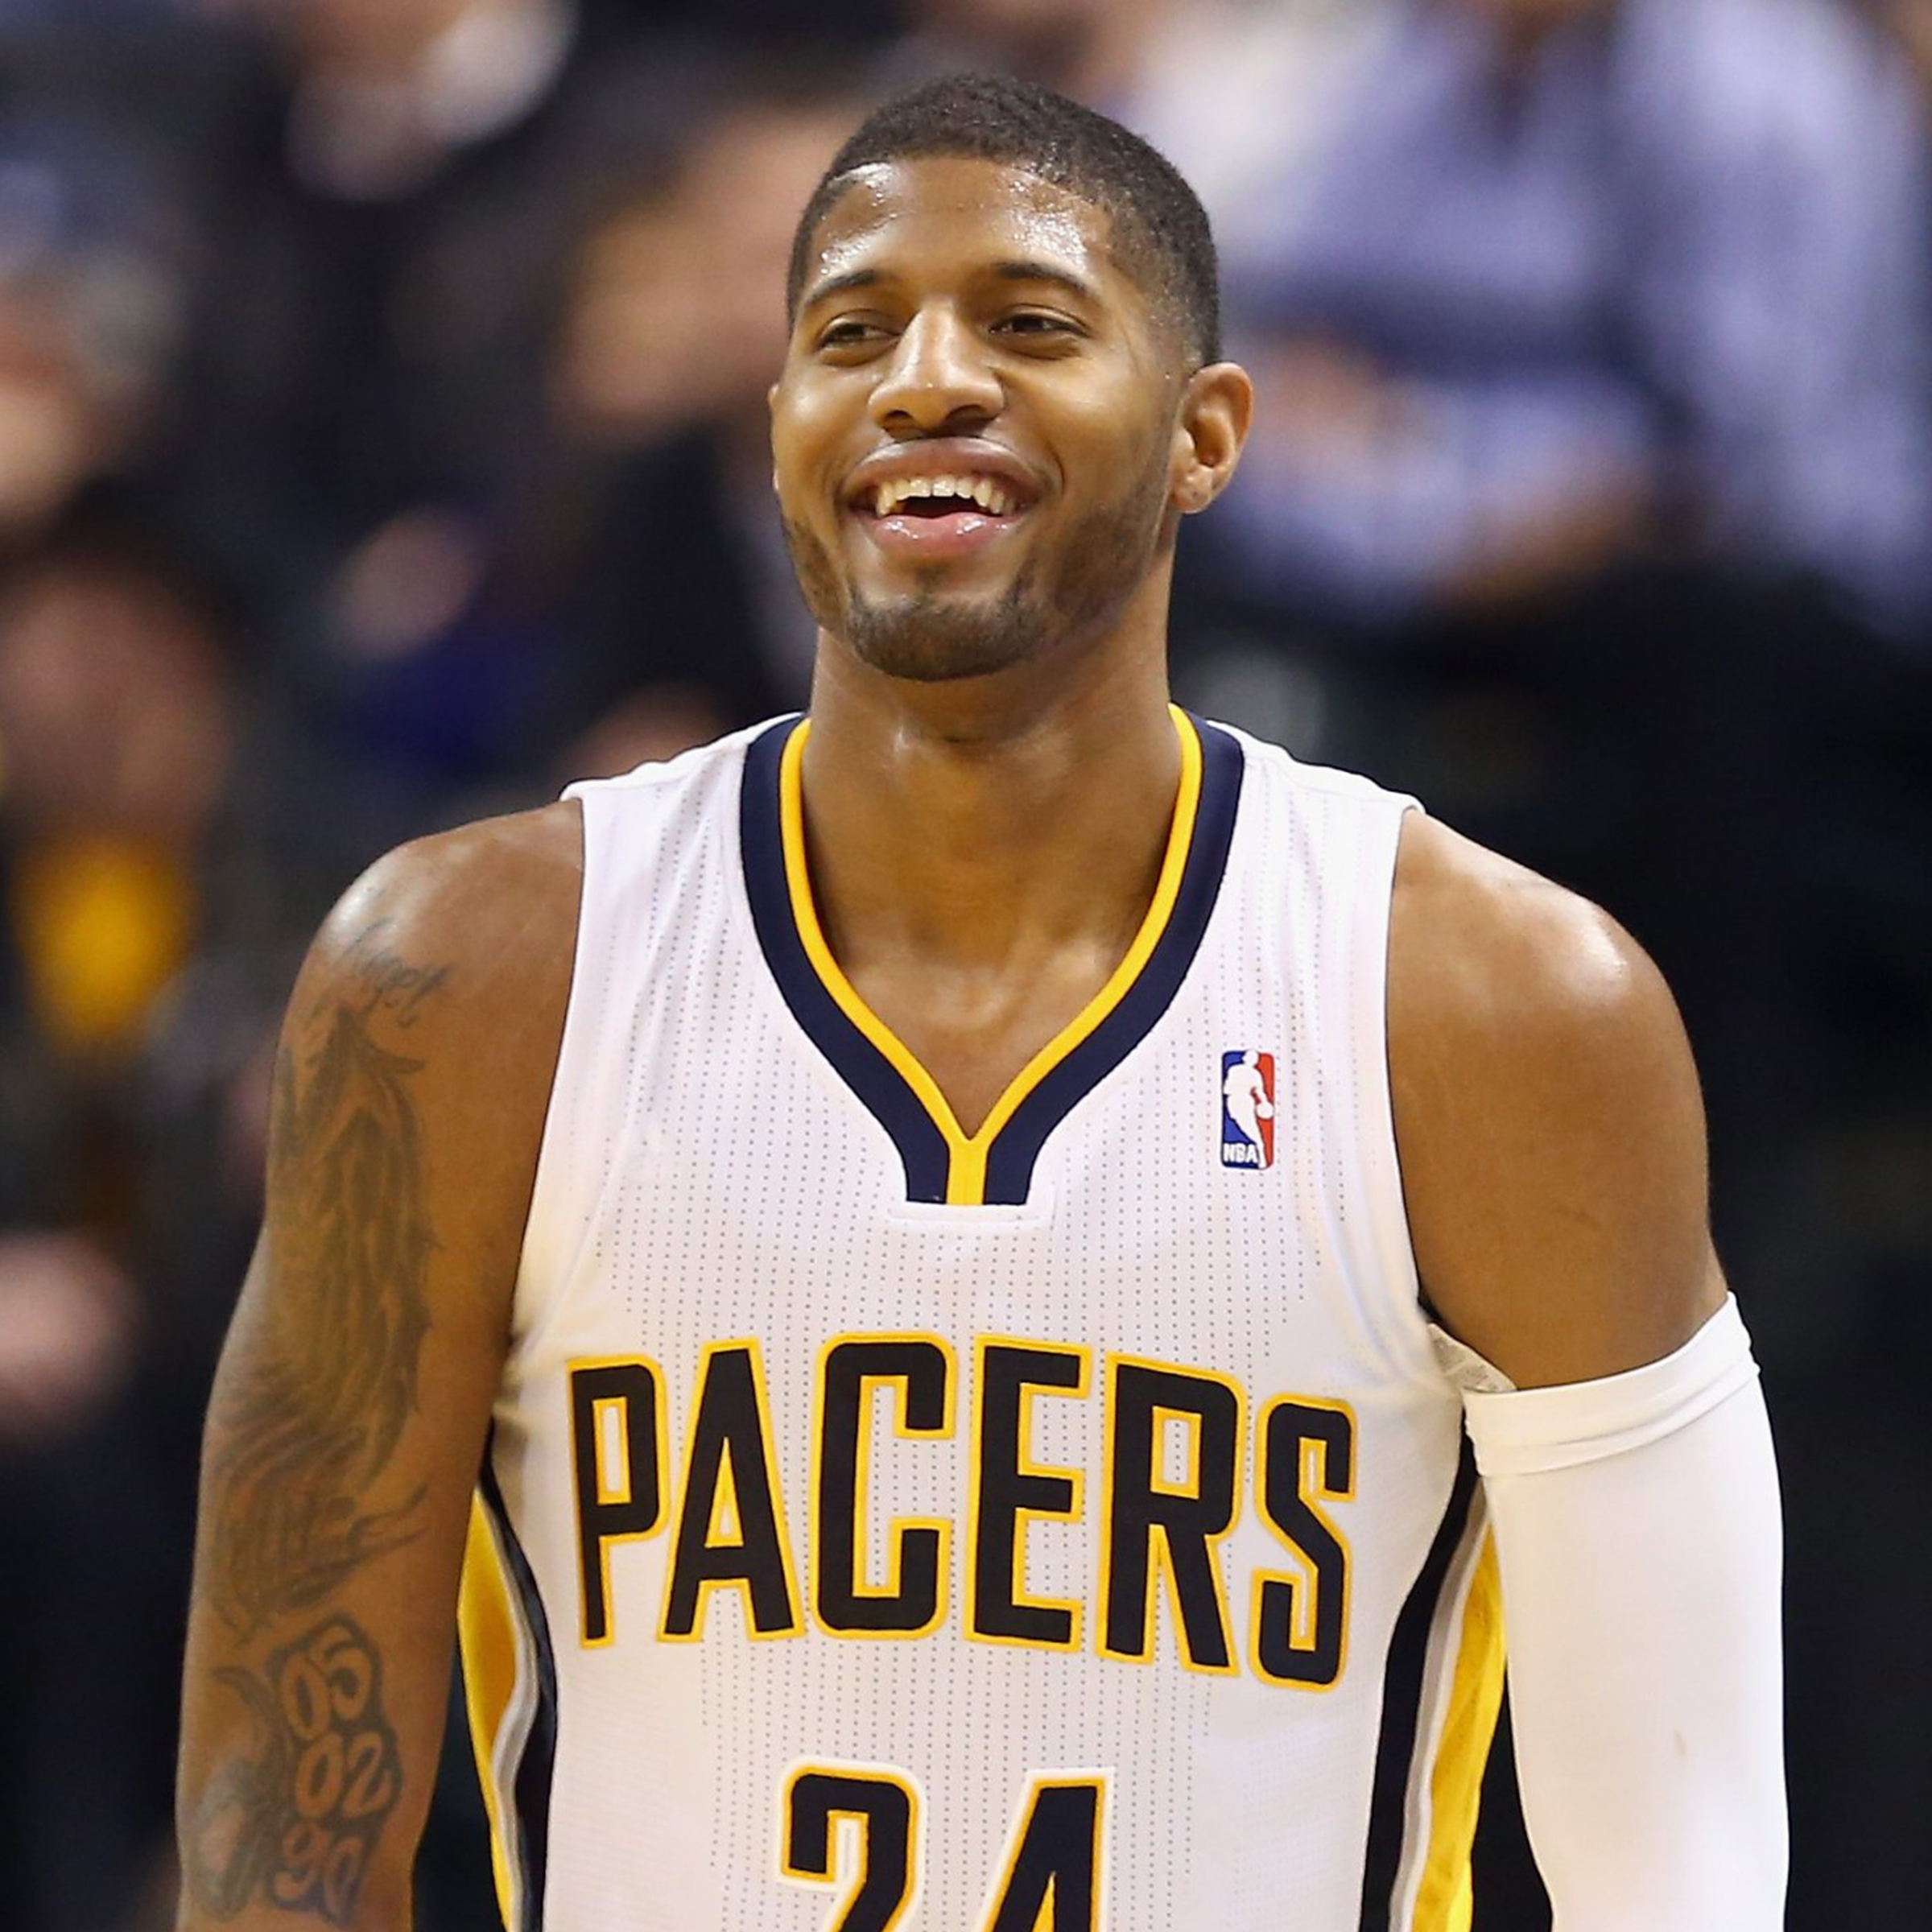 Paul George image